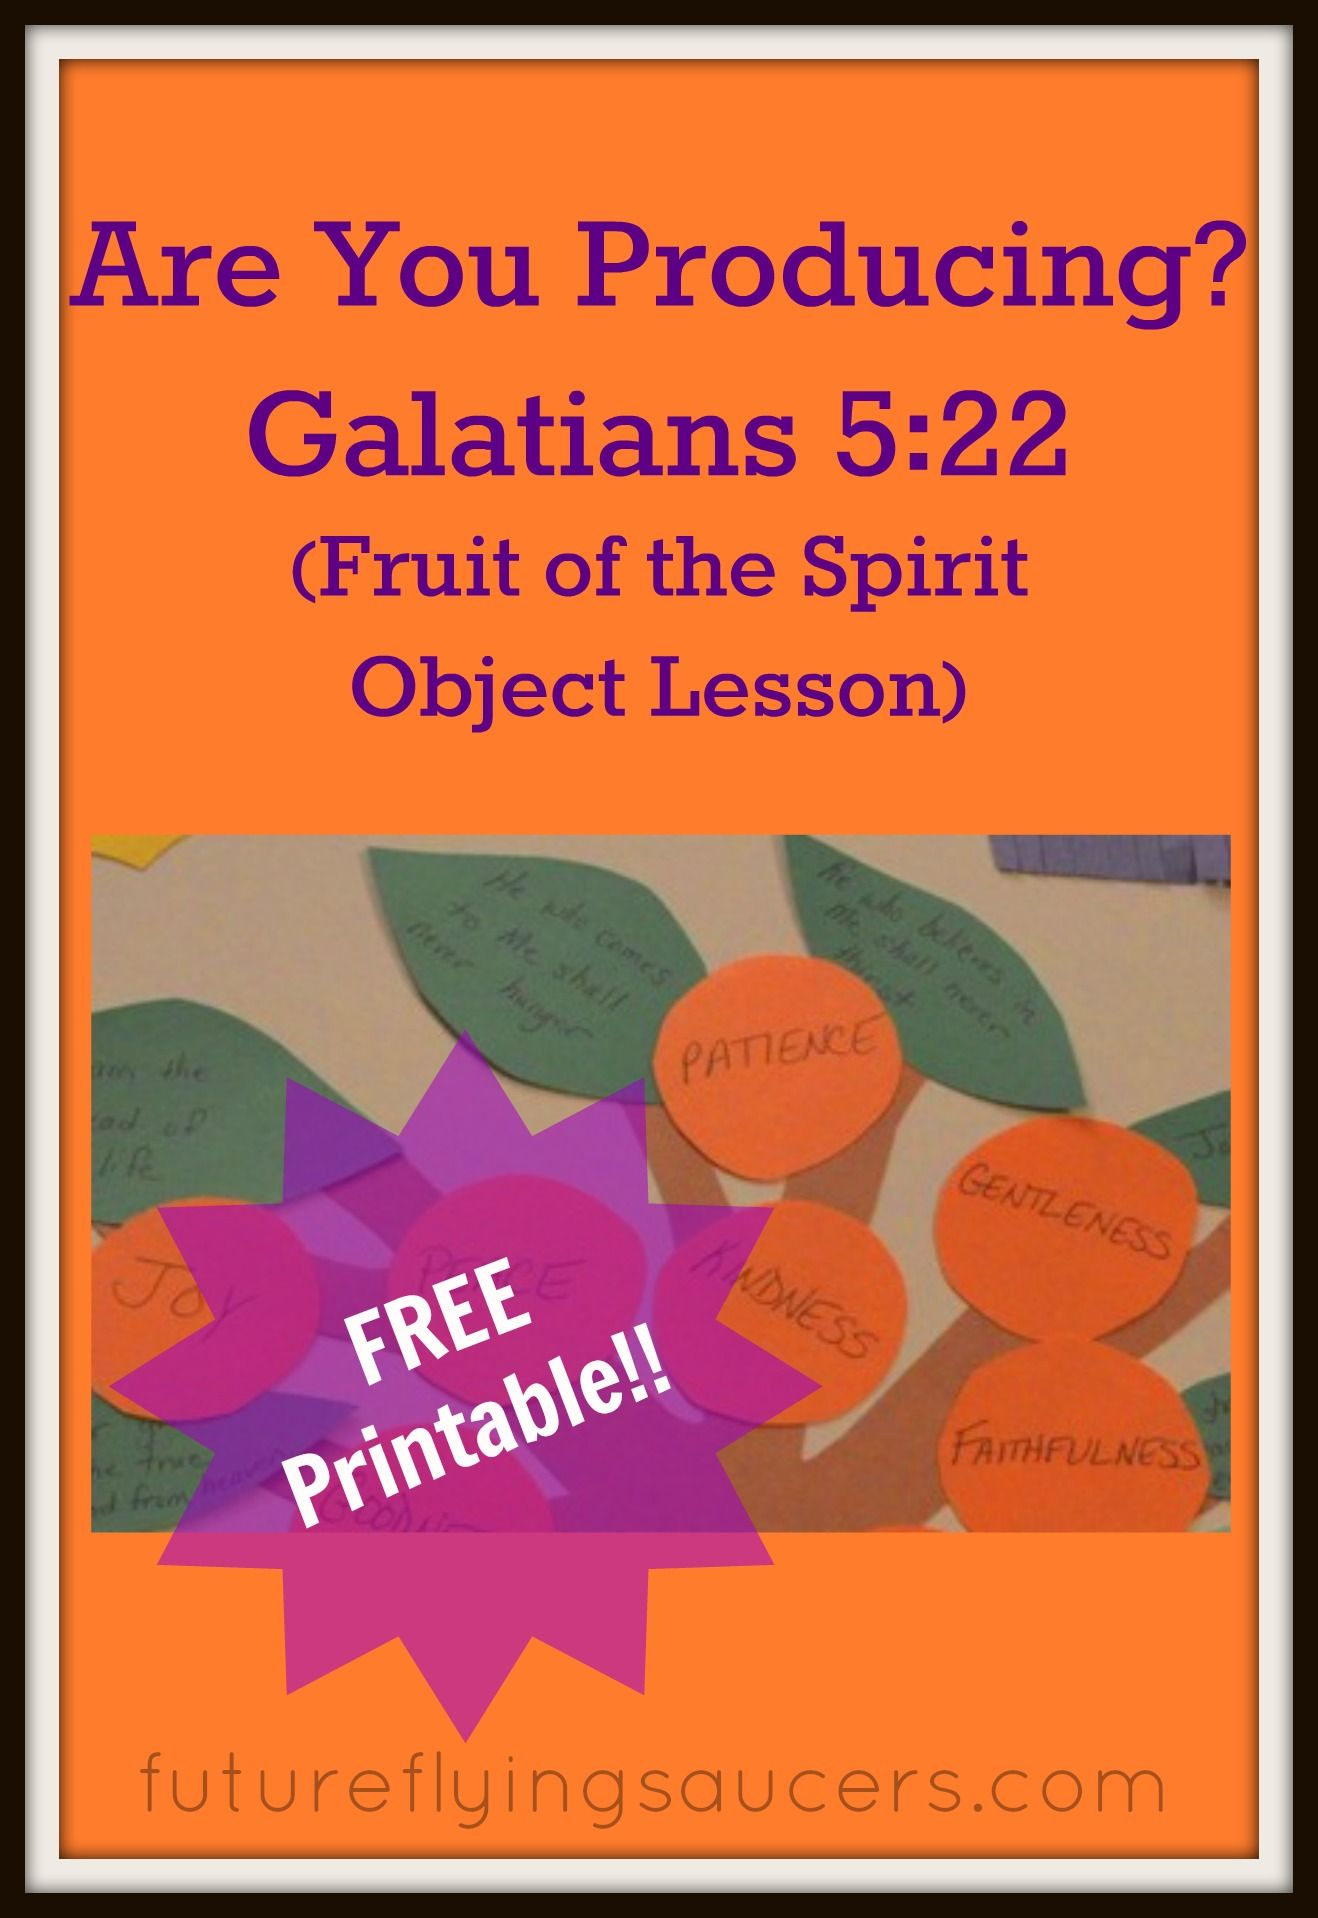 Are you producing fruit of the spirit object lesson